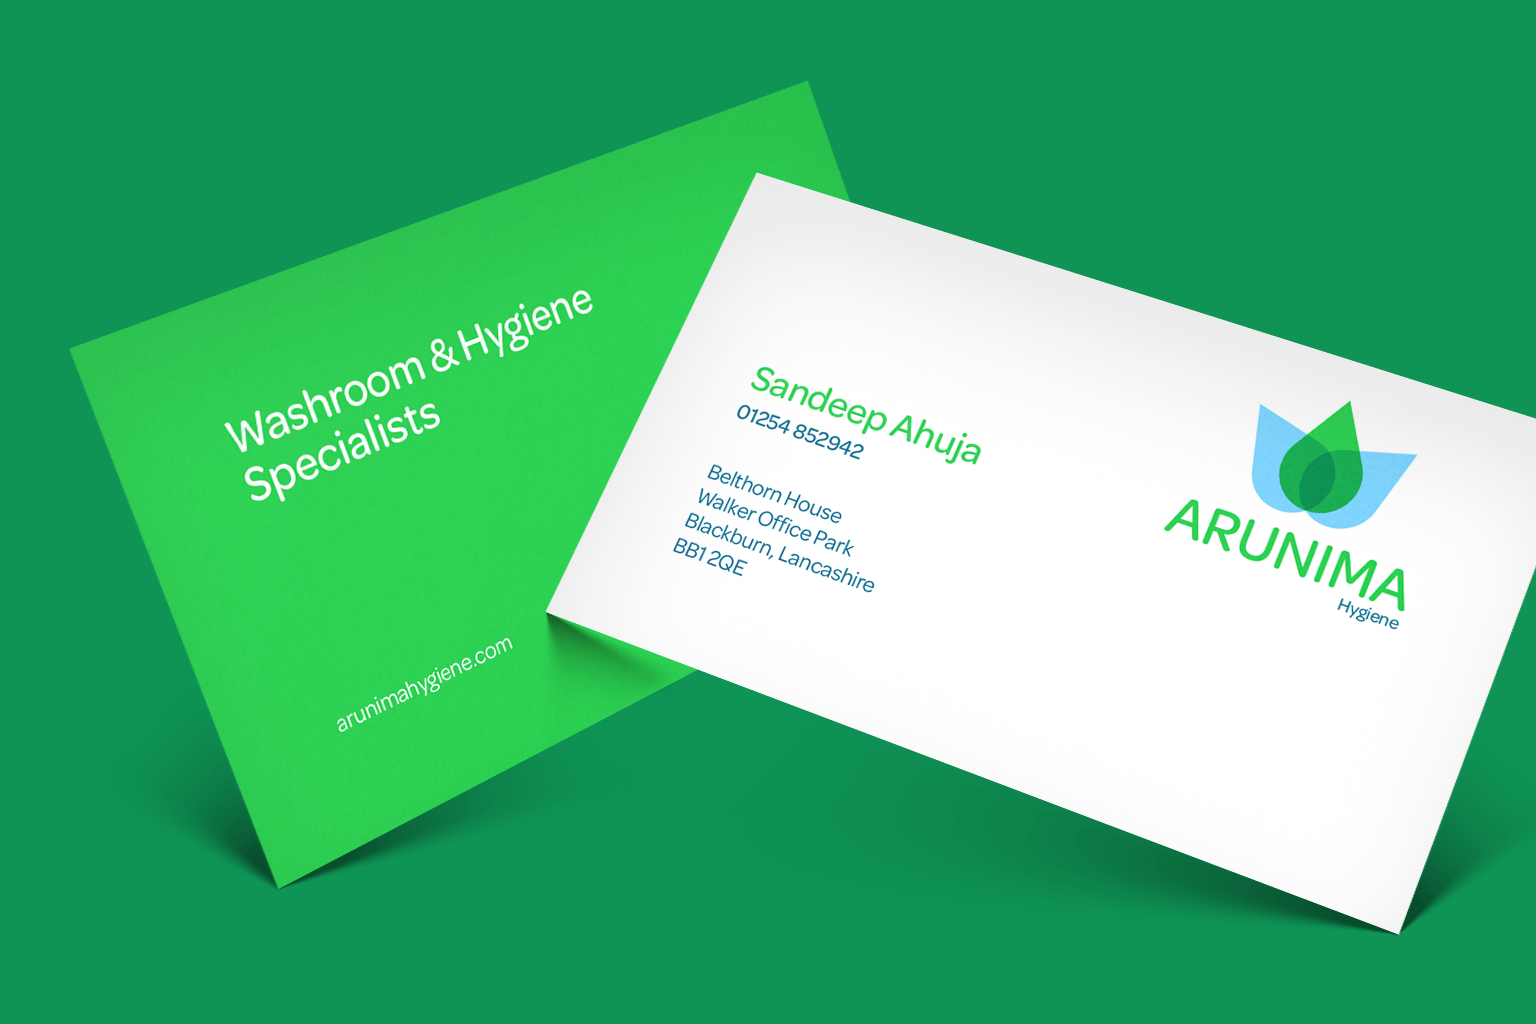 Arunima business card design